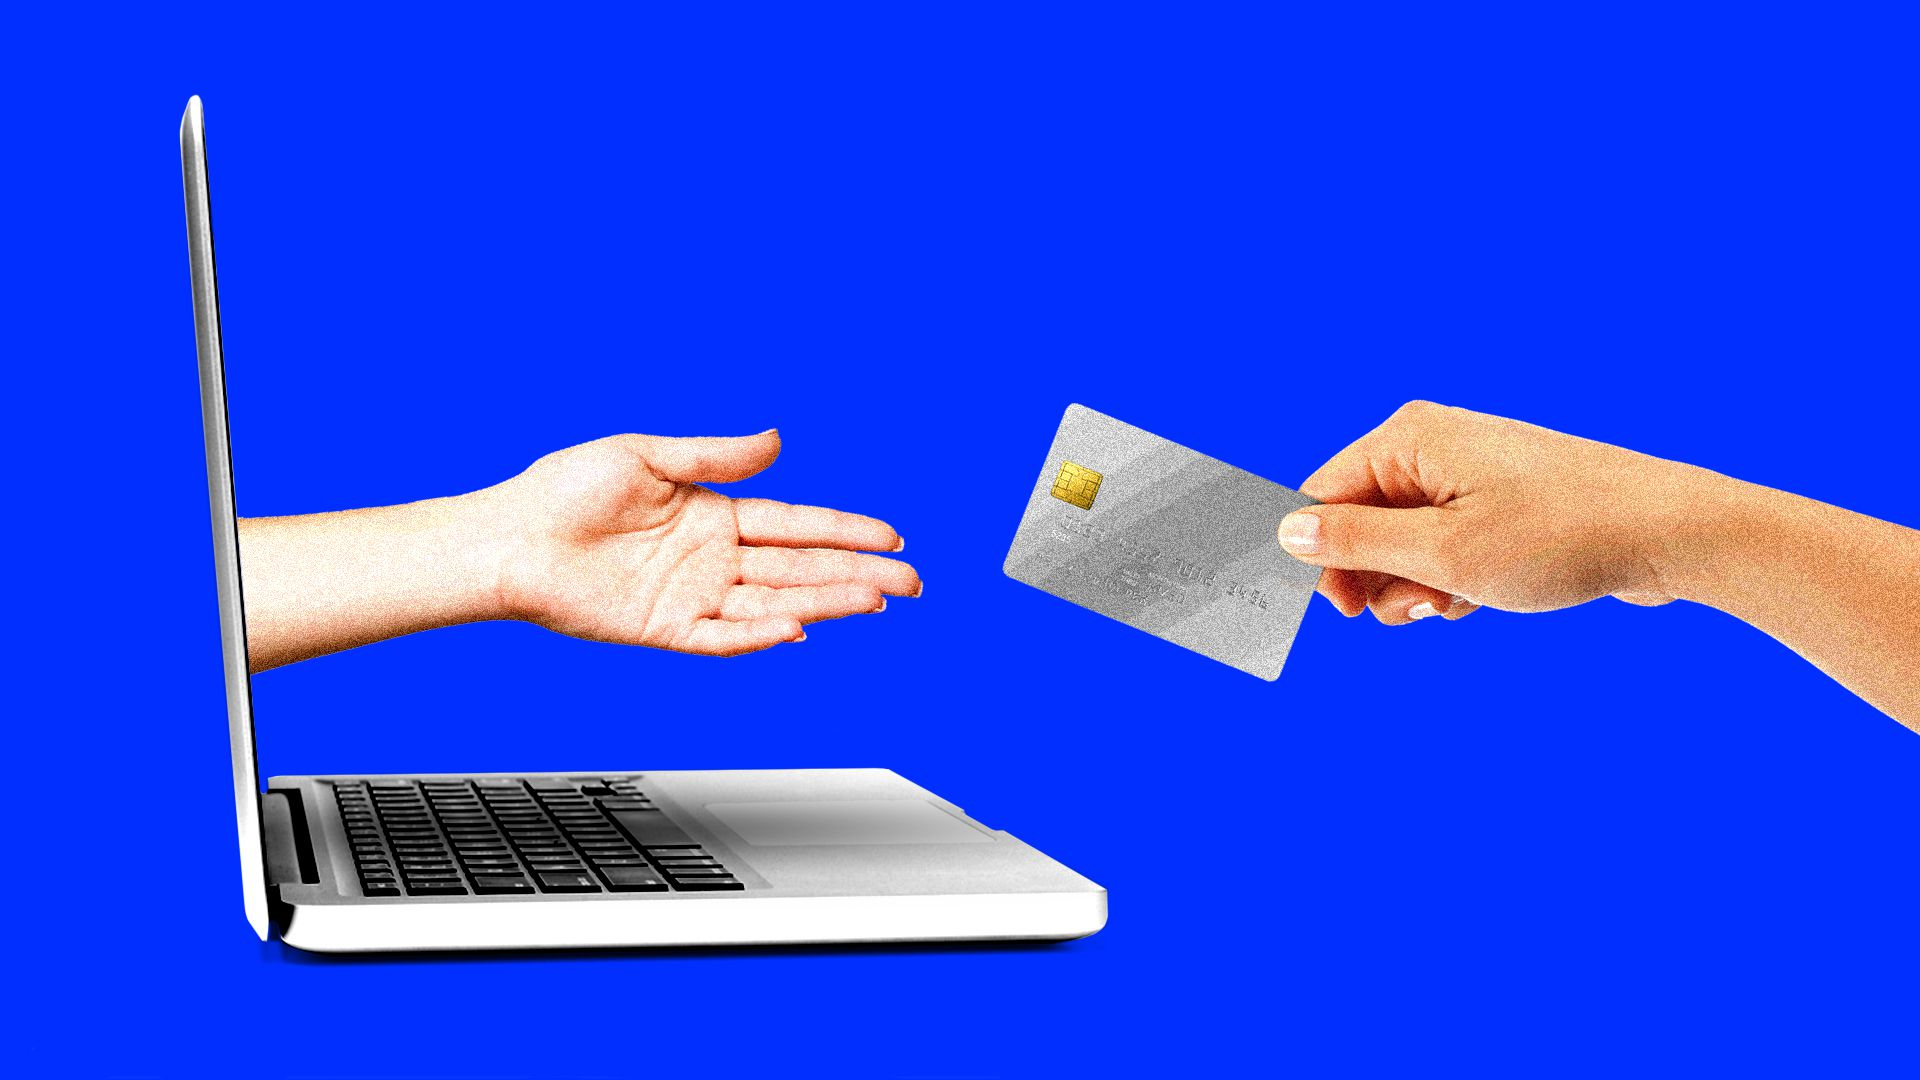 A hand extending from a laptop screen reaches for a credit card